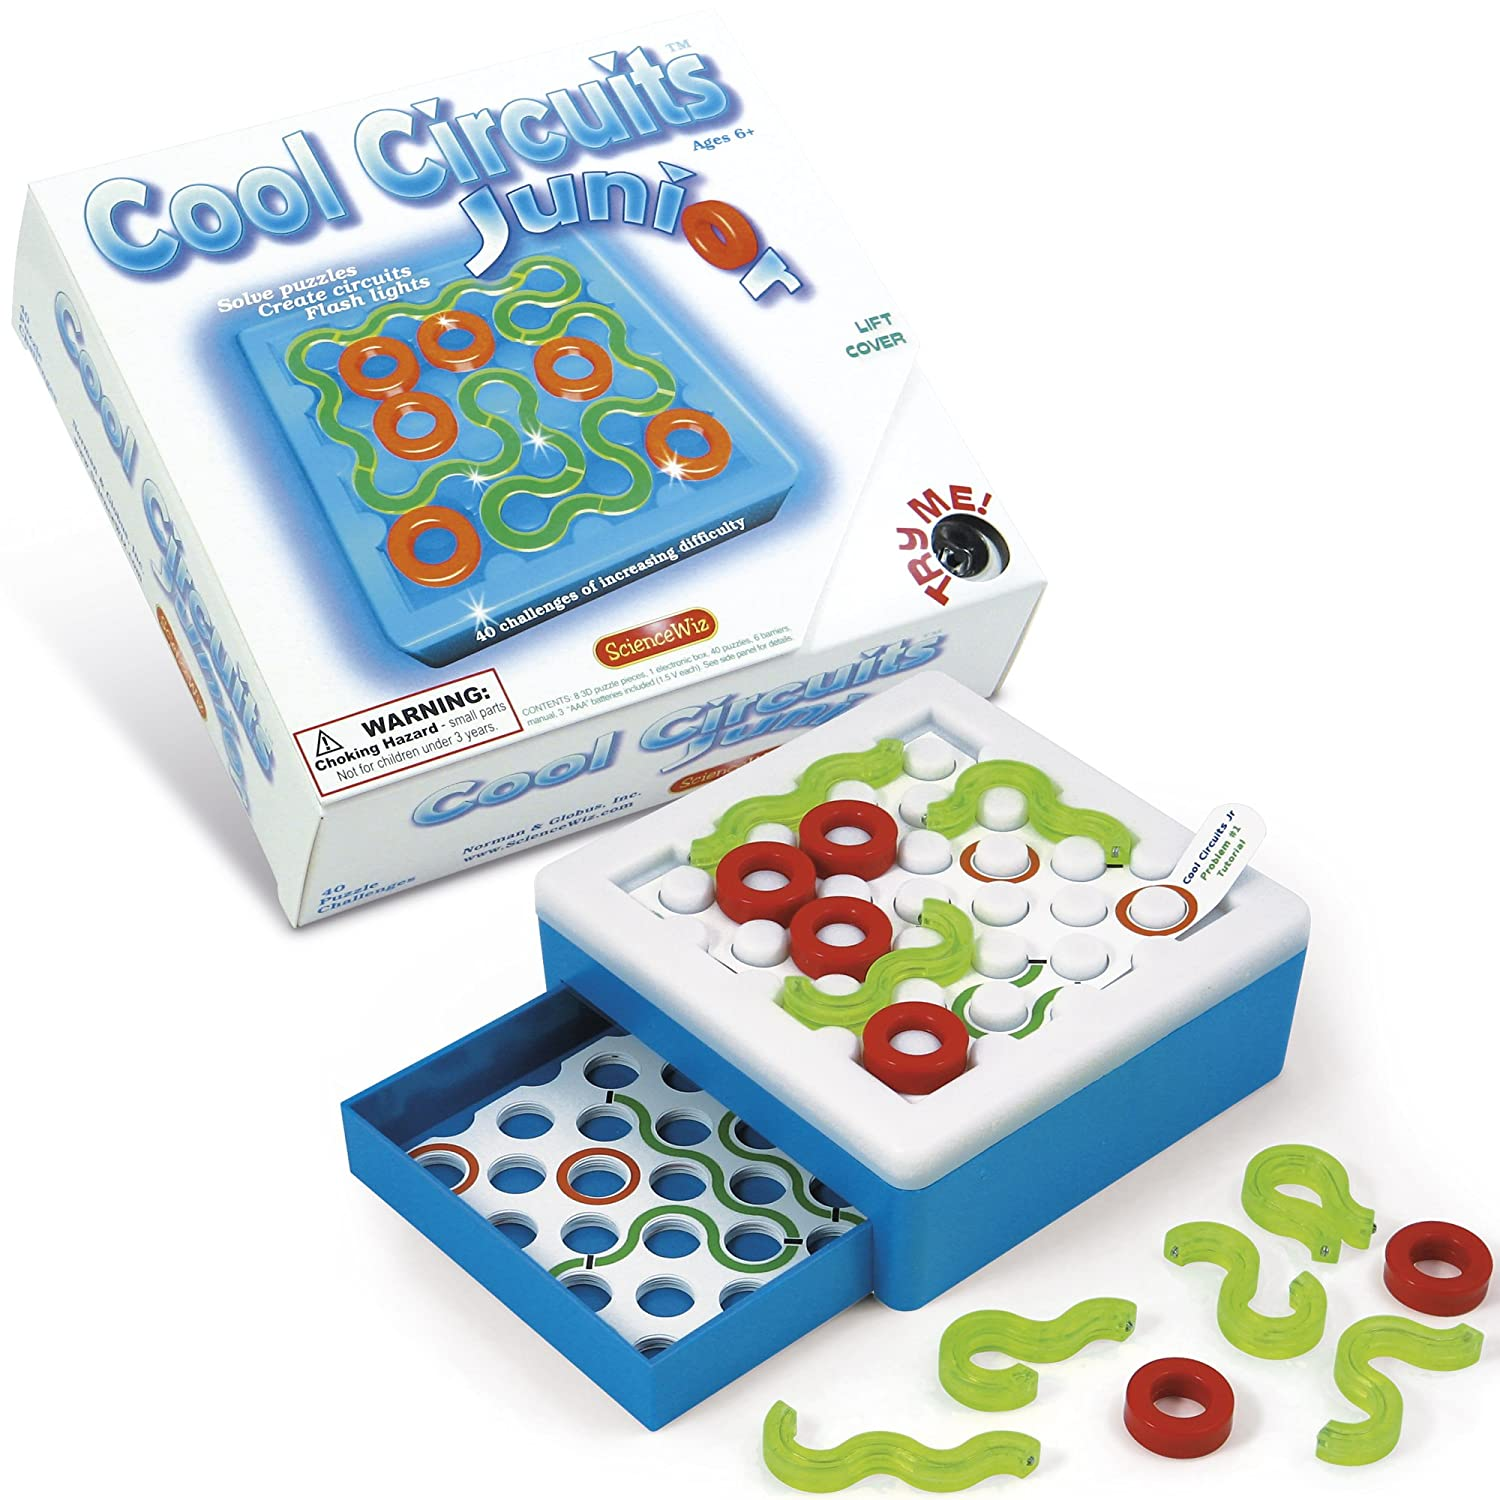 Science Wiz Cool Circuits Kits Maze Sequential Puzzles Basic Electronics Toys For Kids Snap Jr Sc 100 Junior Puzzle